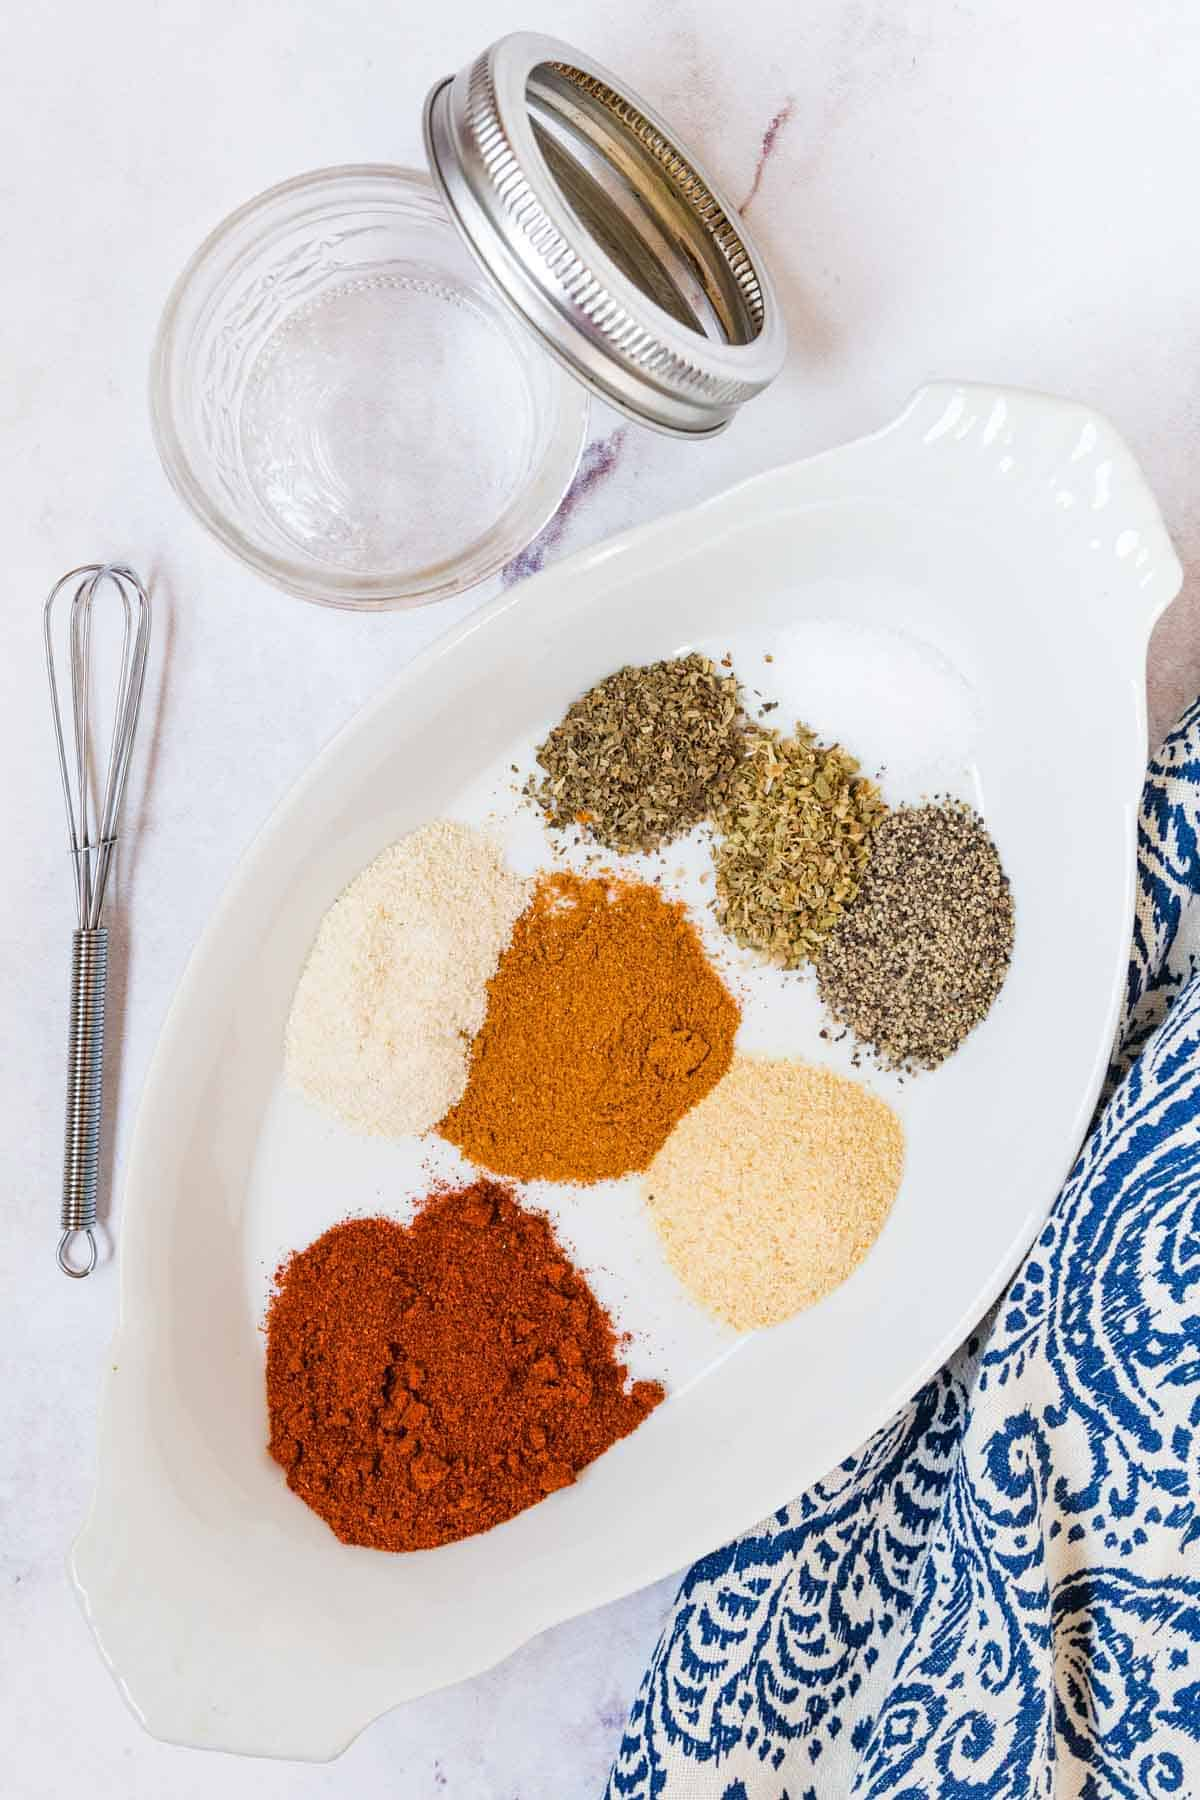 A Bowl Conaining All of the Spice Rub Ingredients Beside a Mini Whisk and a Glass Jar